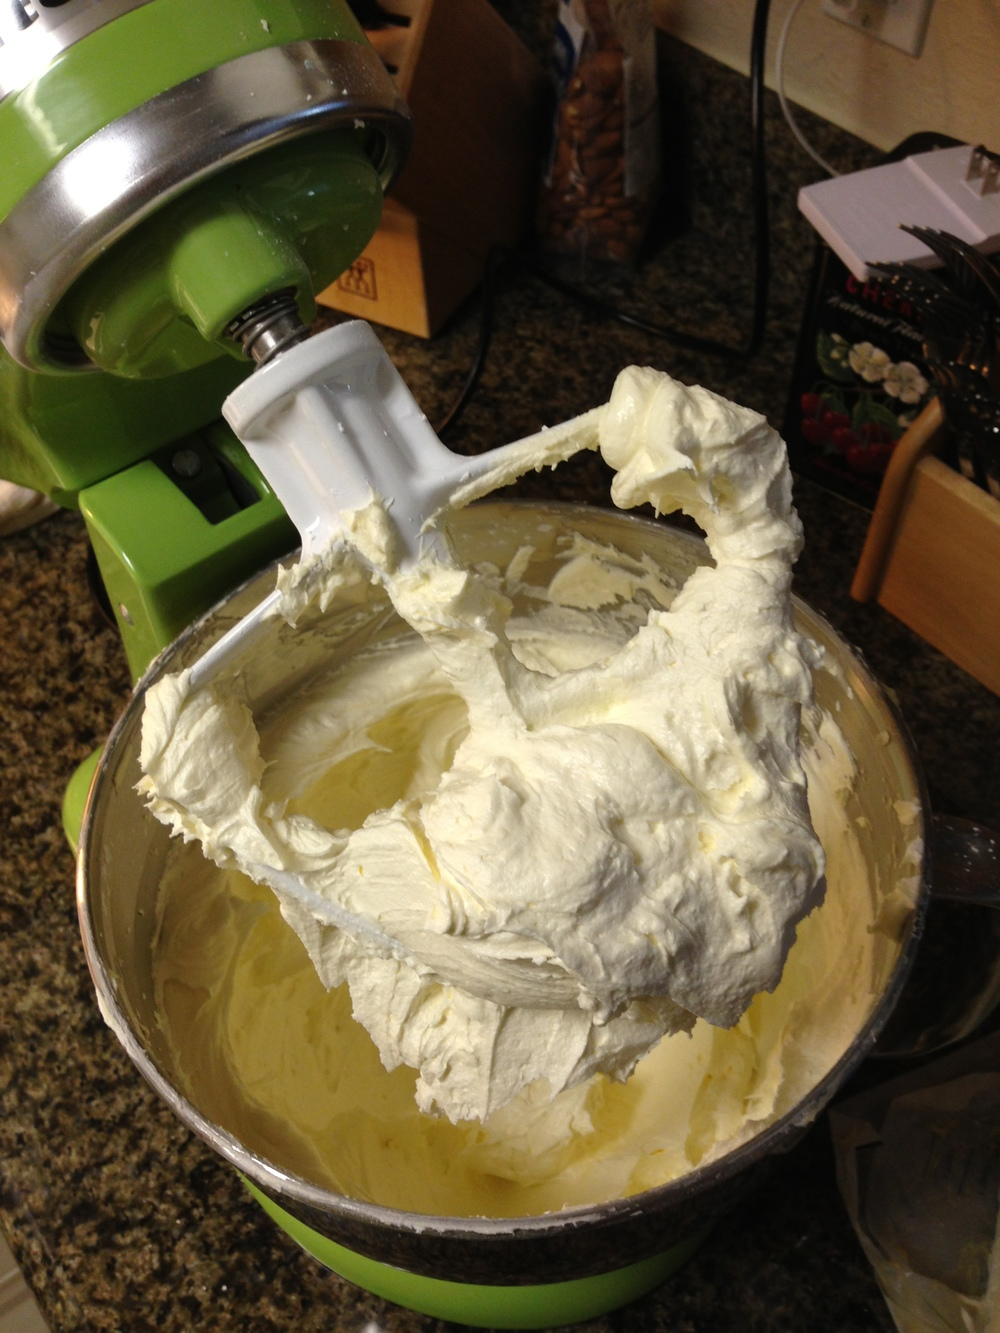 Once the butter was creamed, I thought the mixture was slicker than it should have been.